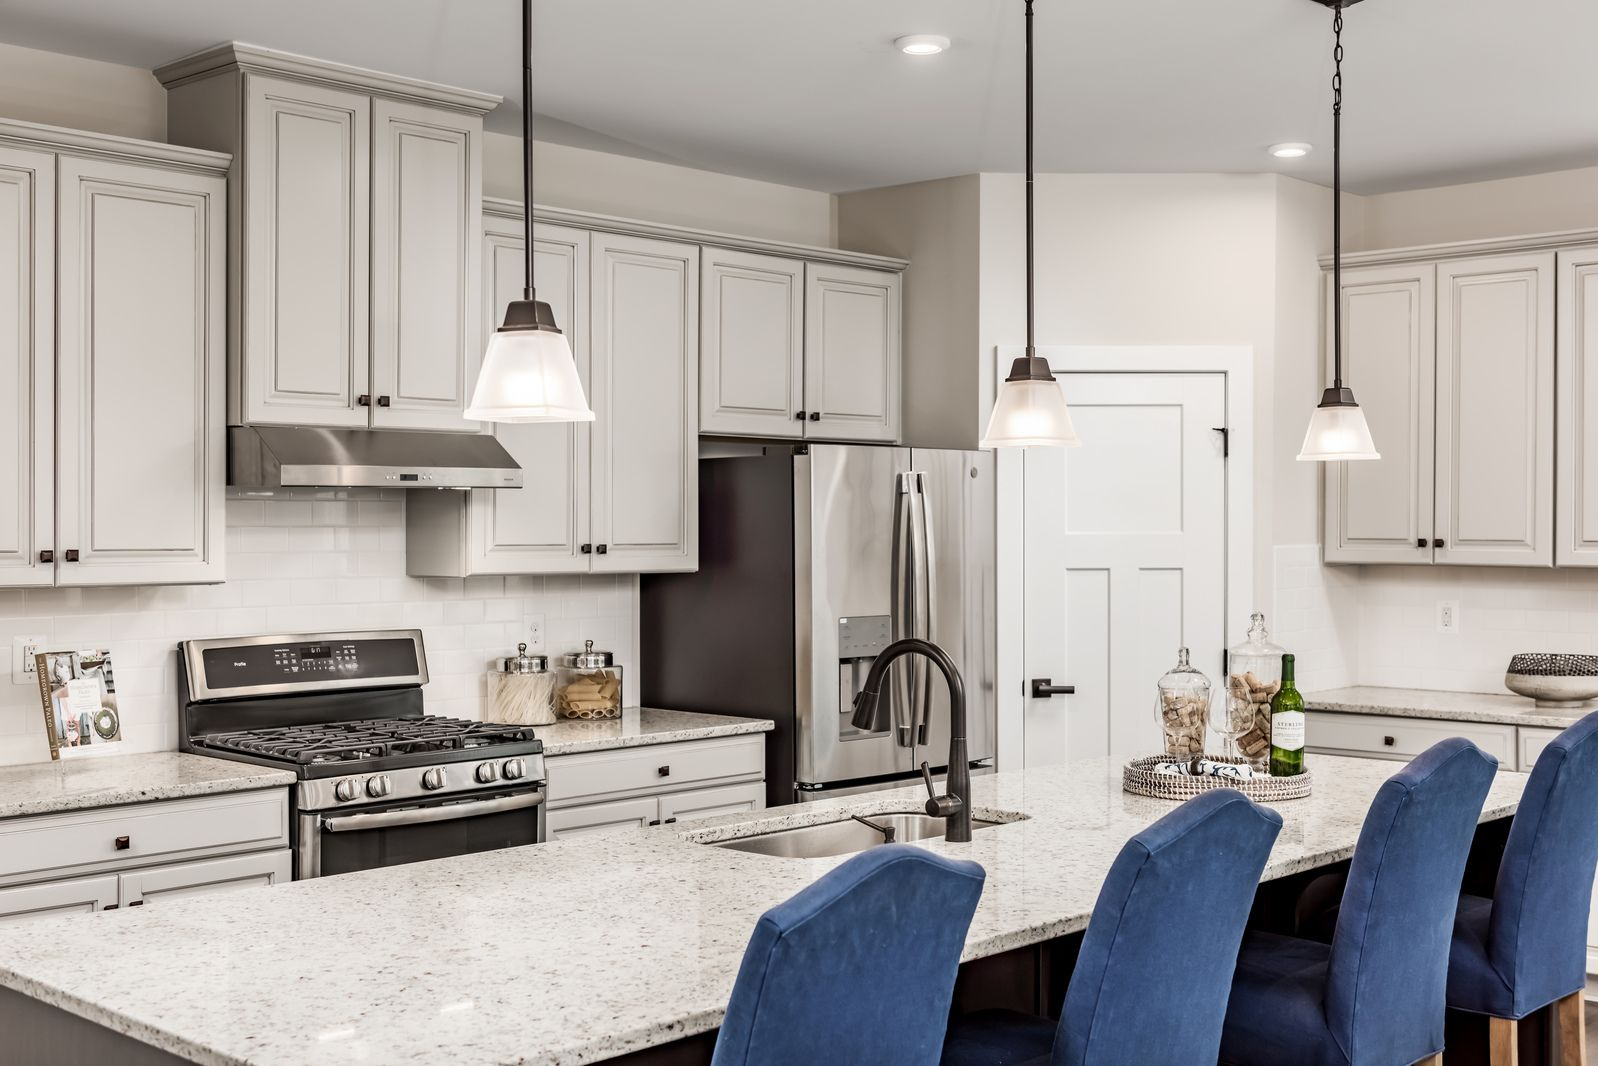 Kitchen featured in the York at Hartland By Ryan Homes in Washington, VA